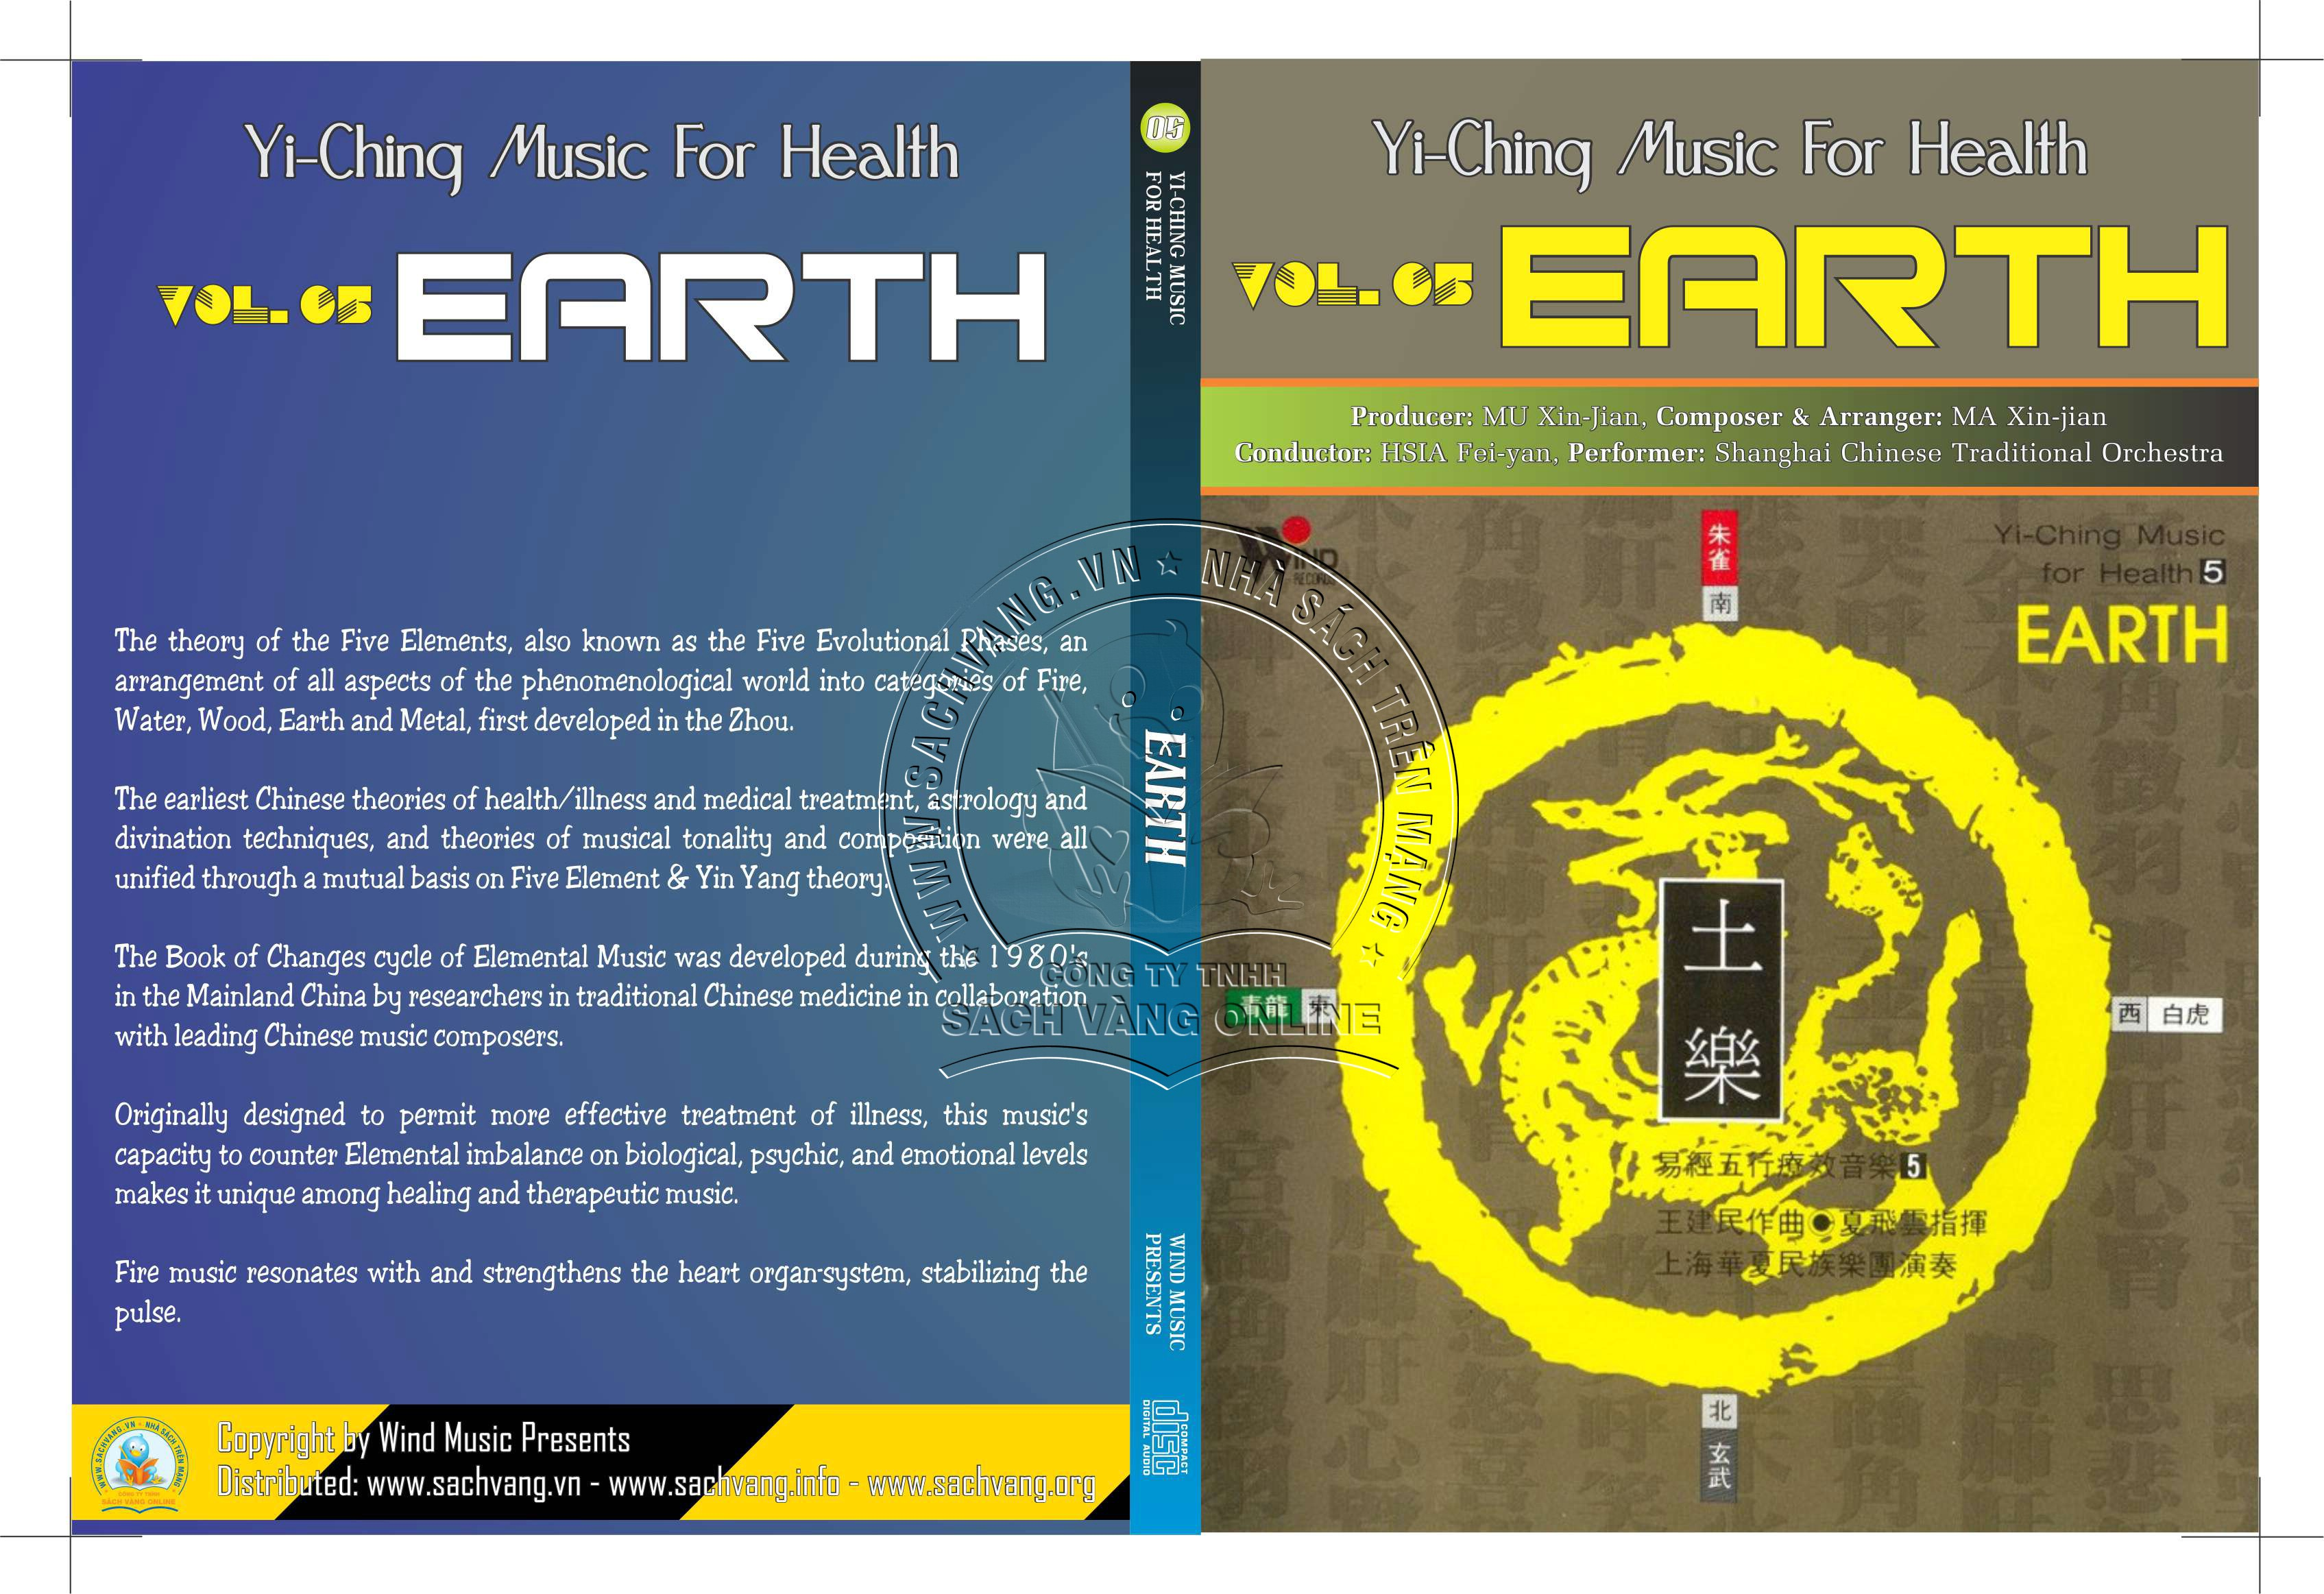 05-Yi-Ching Music For Health - Earth